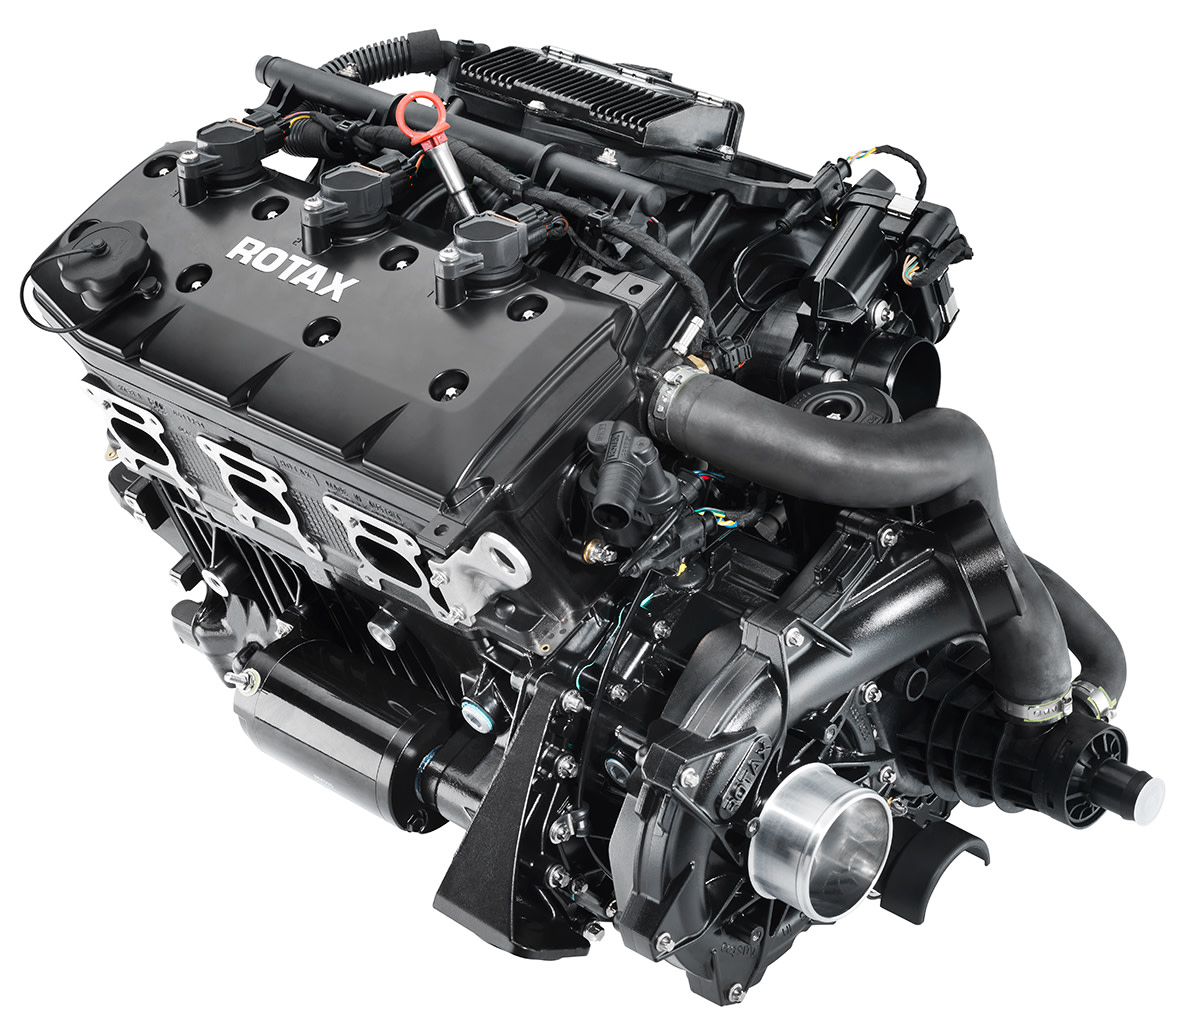 The Rotax ACE 300 produces 15 percent more power than the next largest Rotax engine.